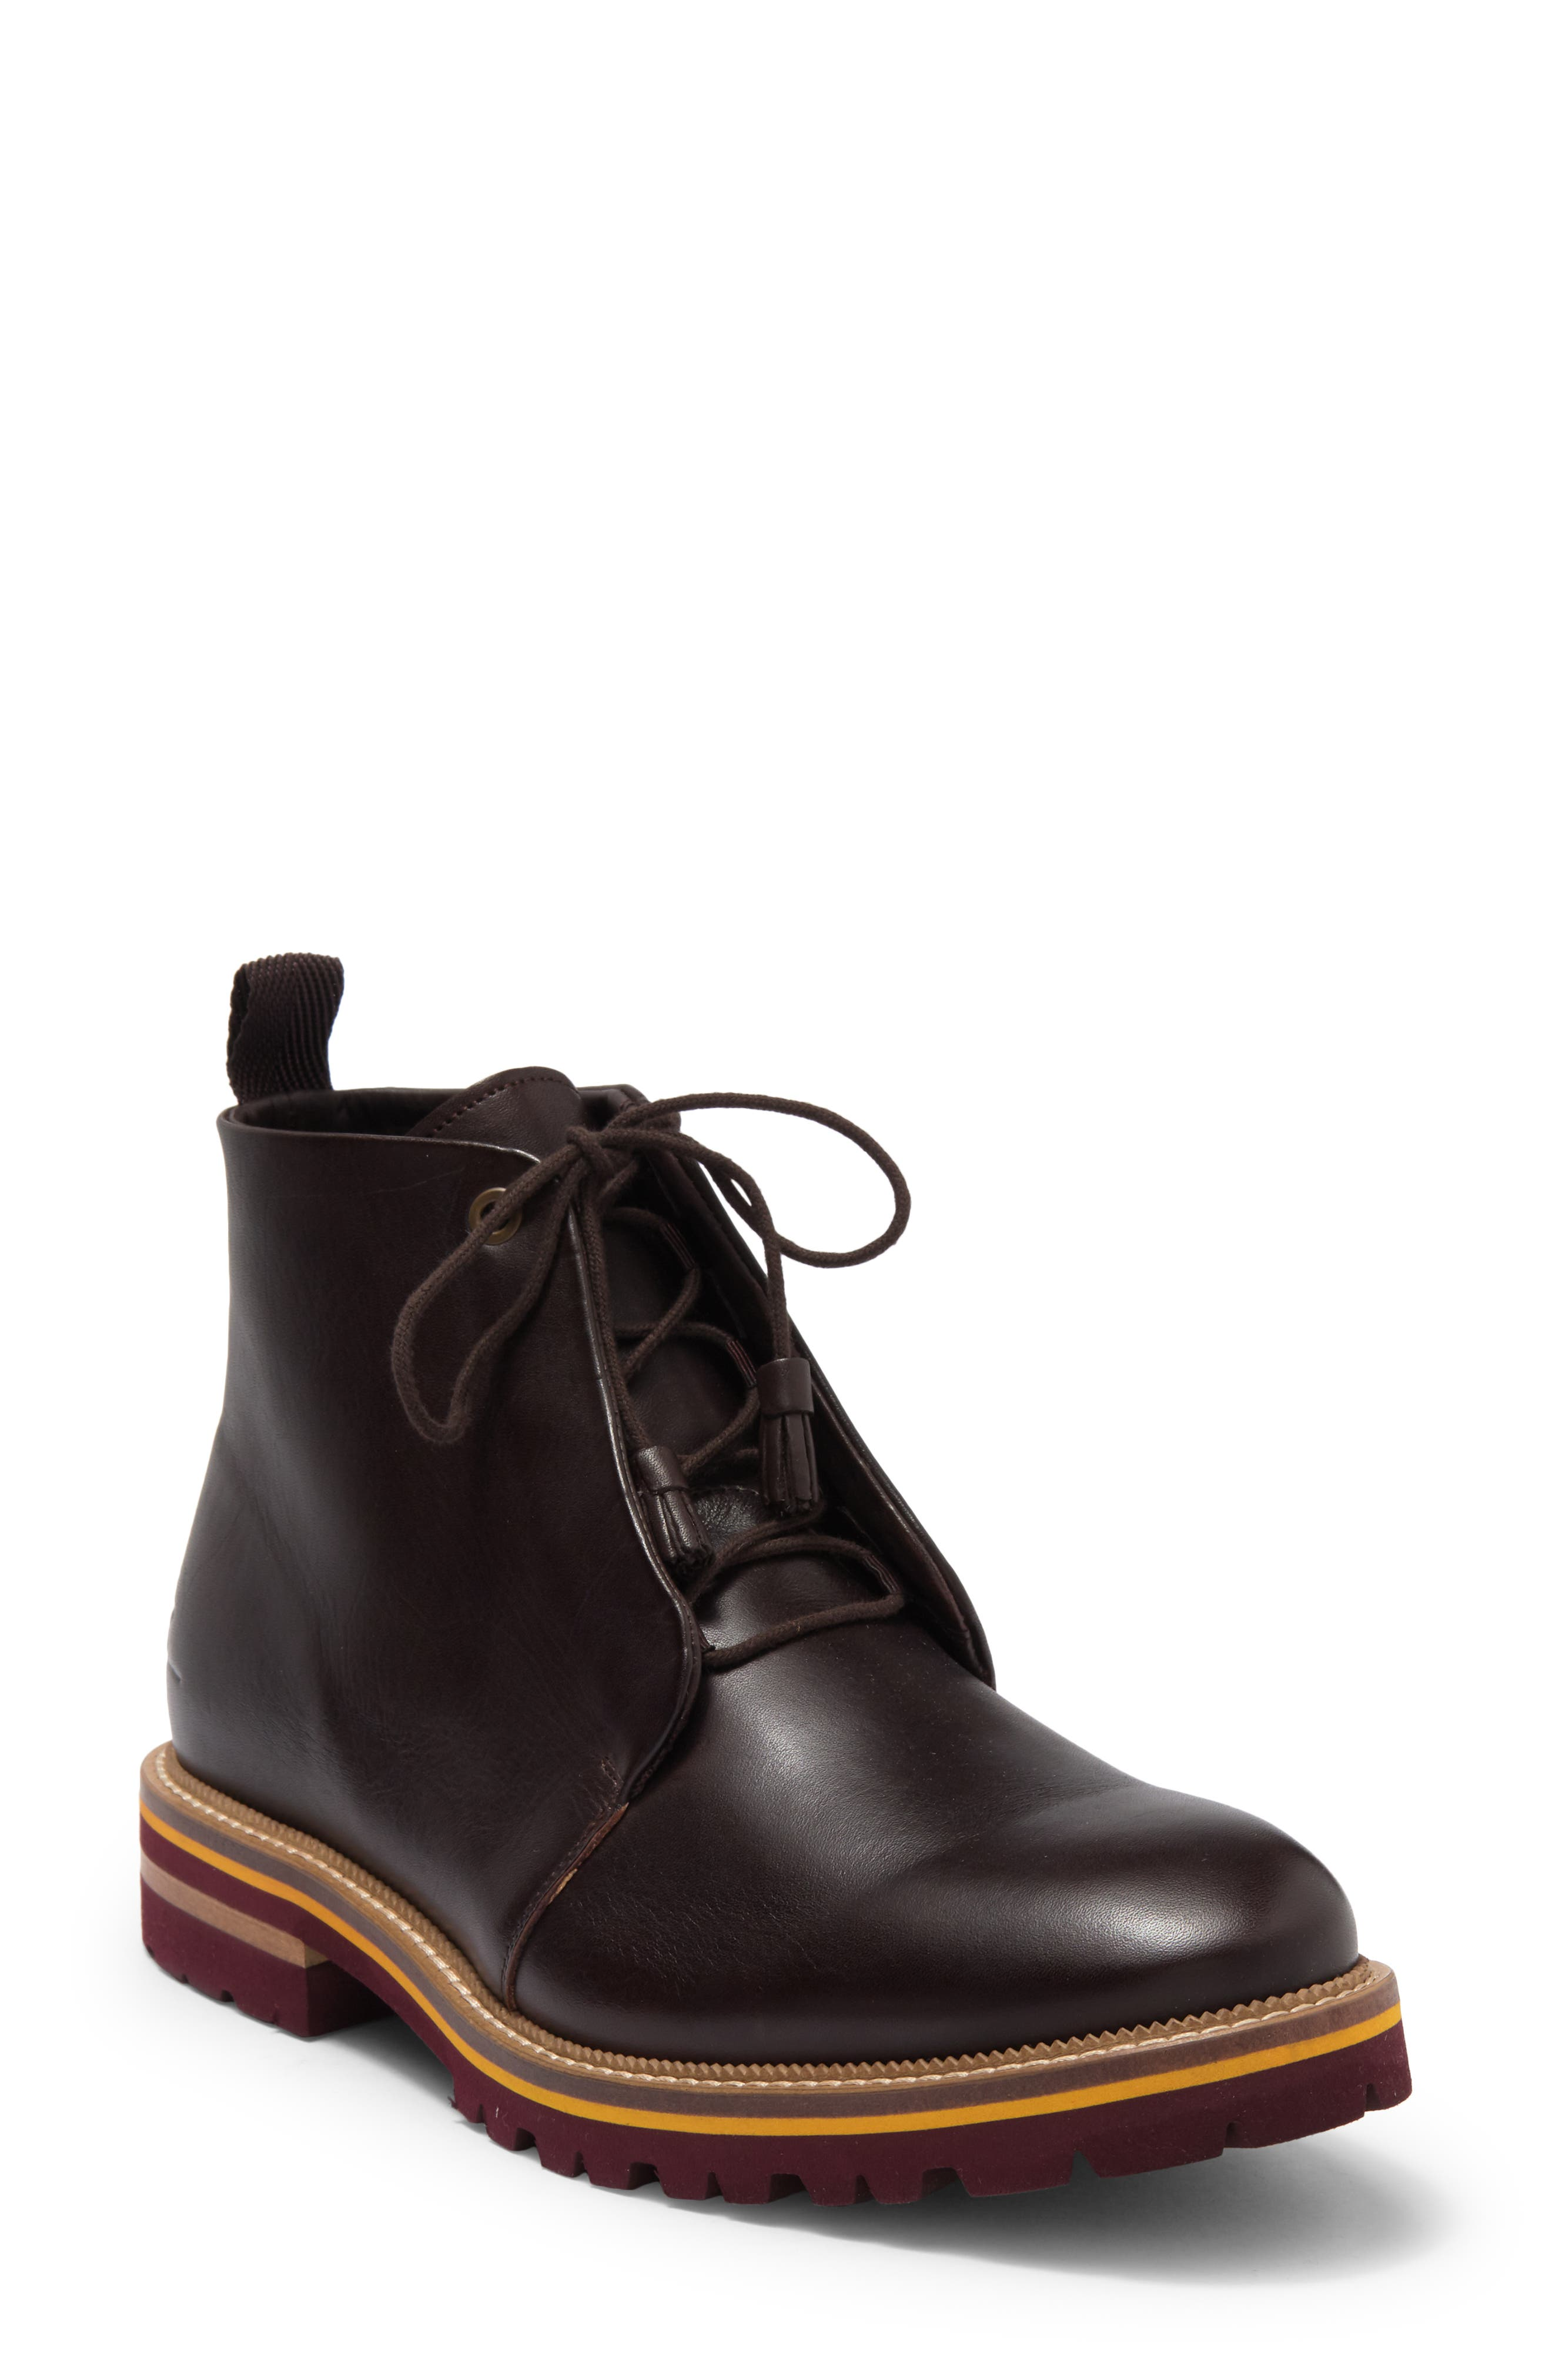 Image of Bacco Bucci Alesia Lace Up Boot